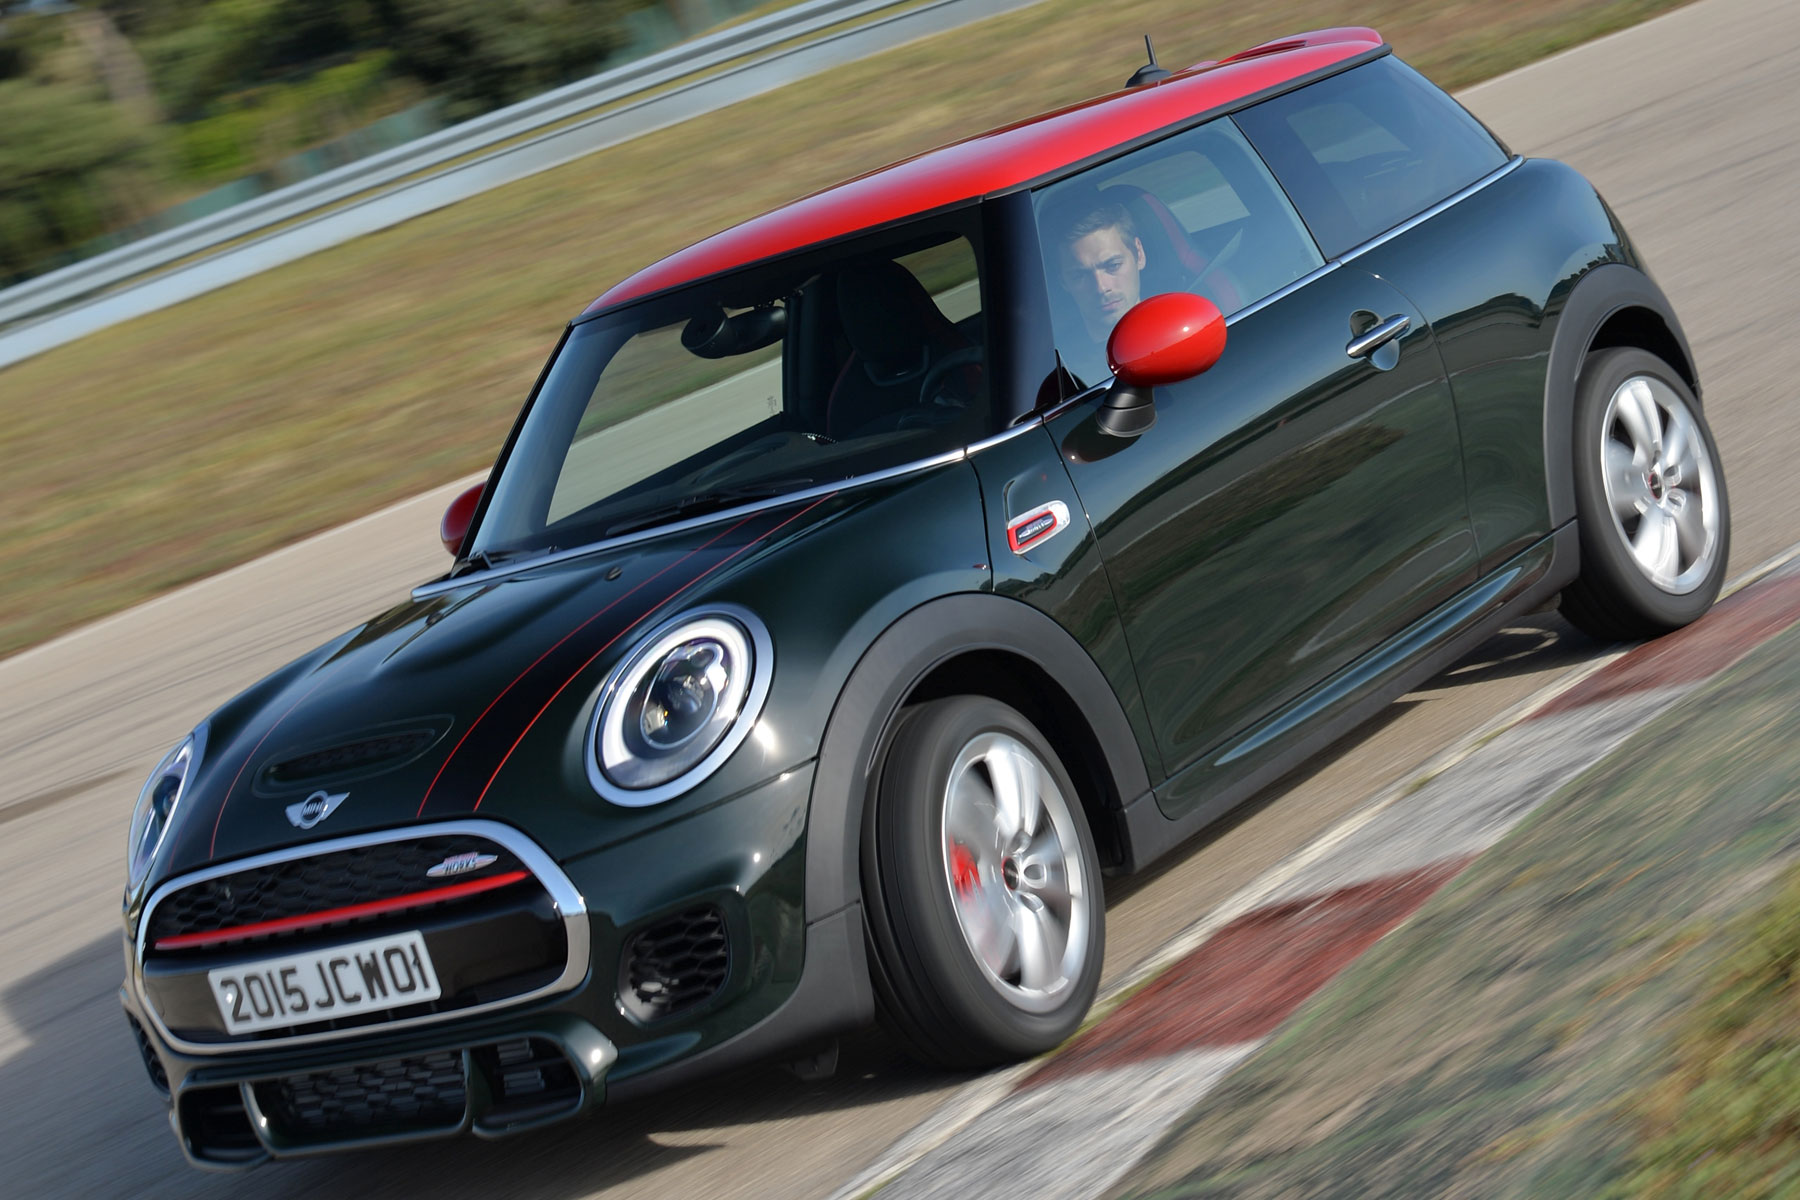 mini john cooper works 2015 first drive motoring research. Black Bedroom Furniture Sets. Home Design Ideas